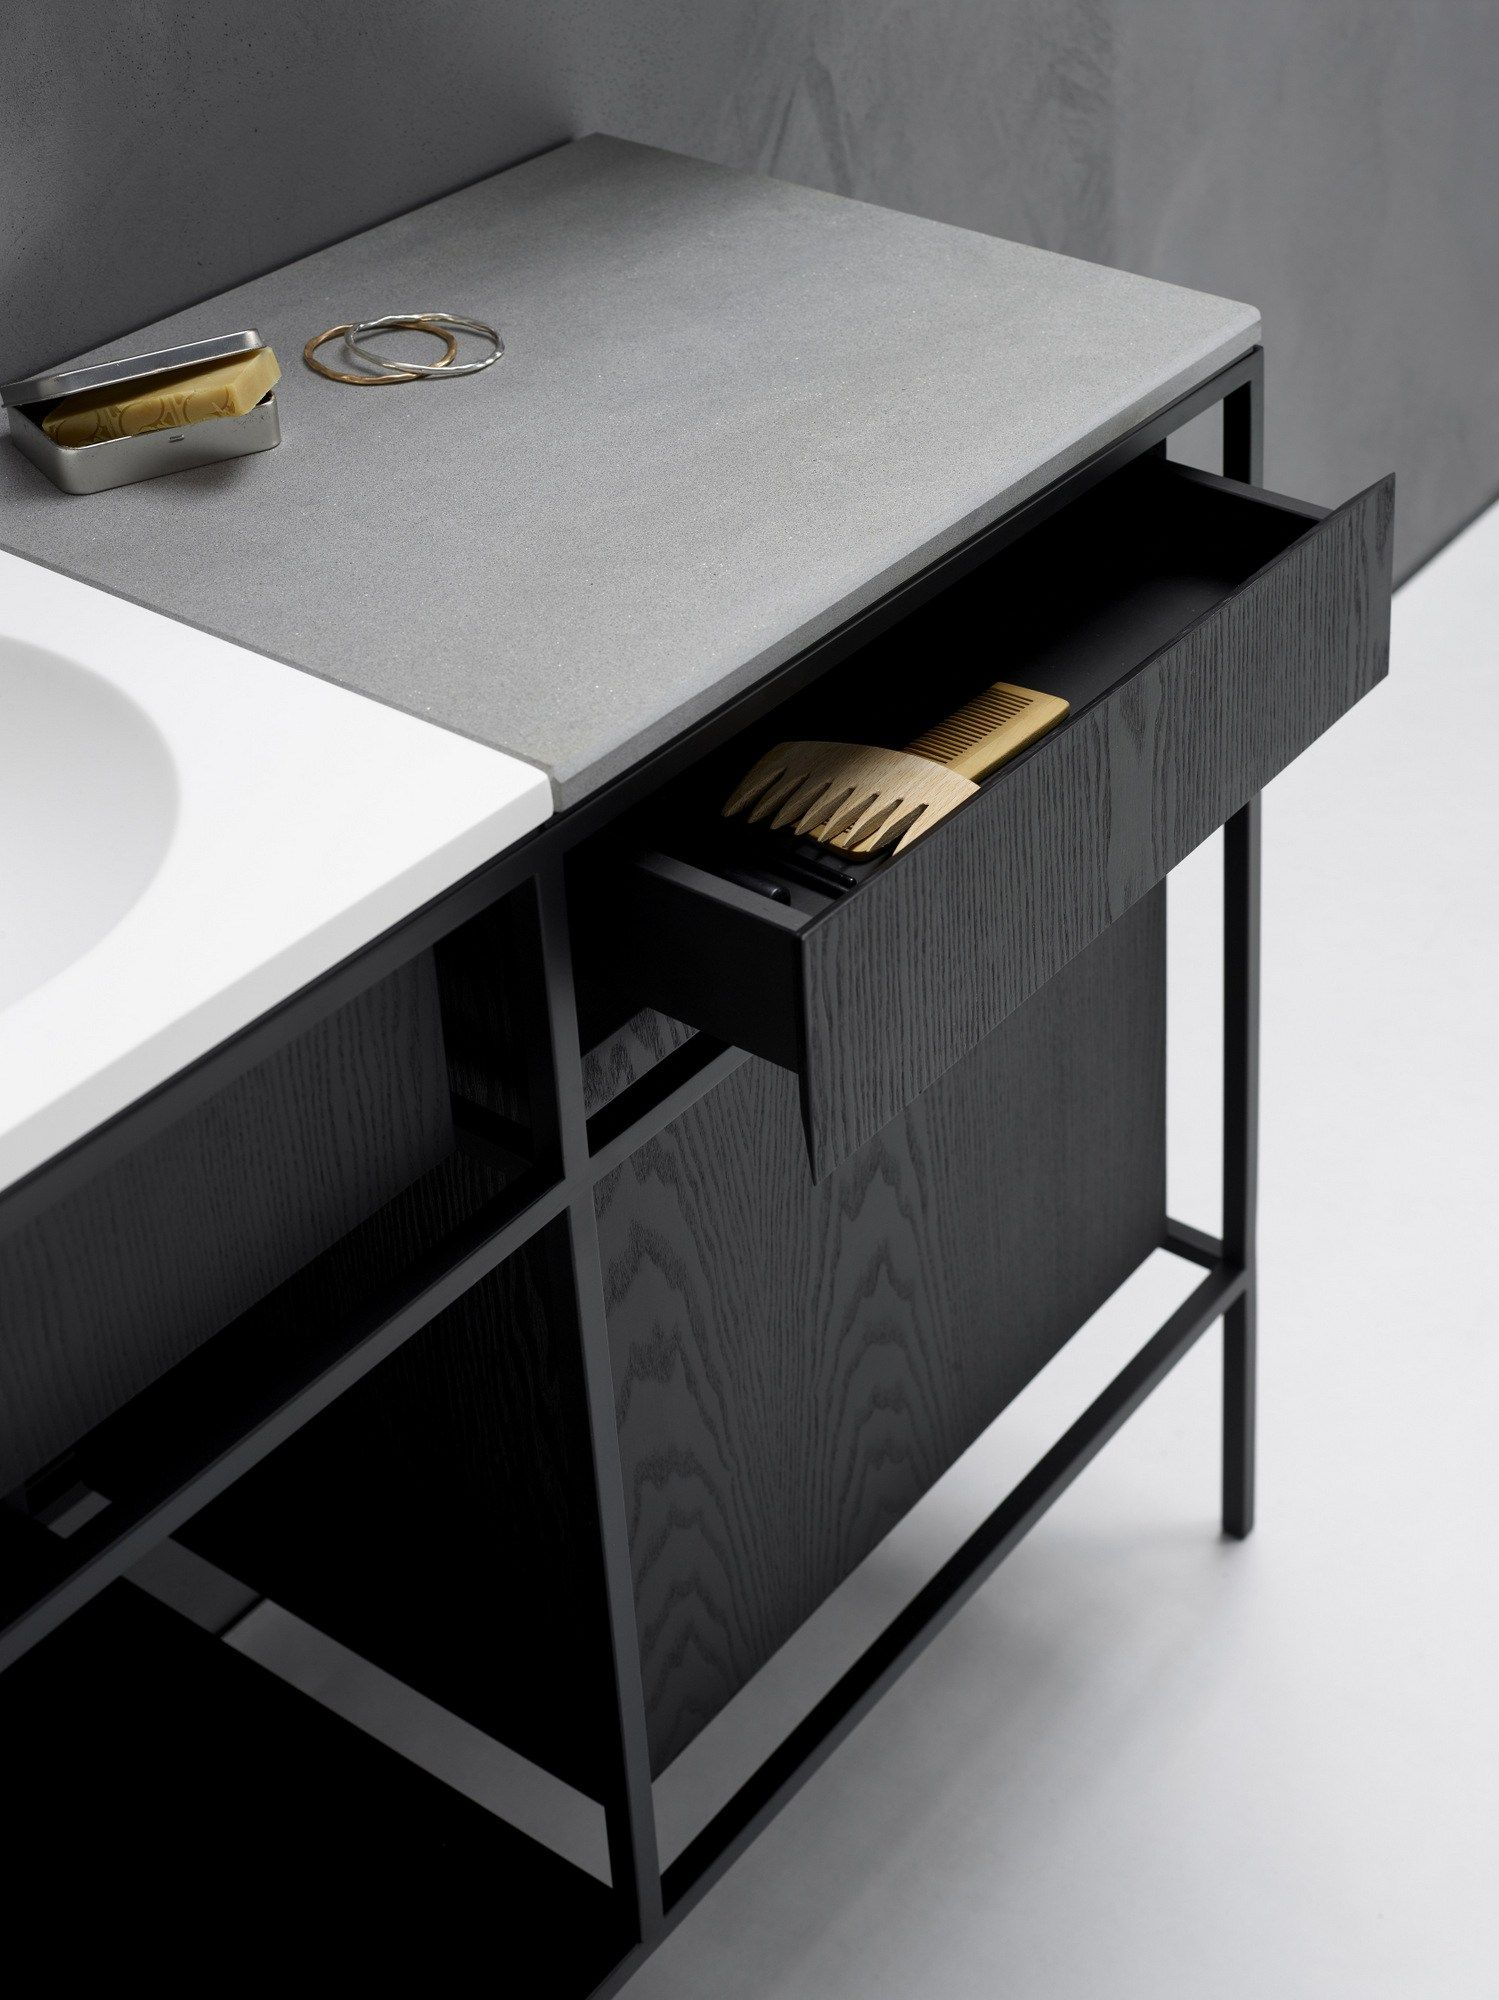 Vanity Unit With Drawers FRAME By Ex.t Design NORM ARCHITECTS